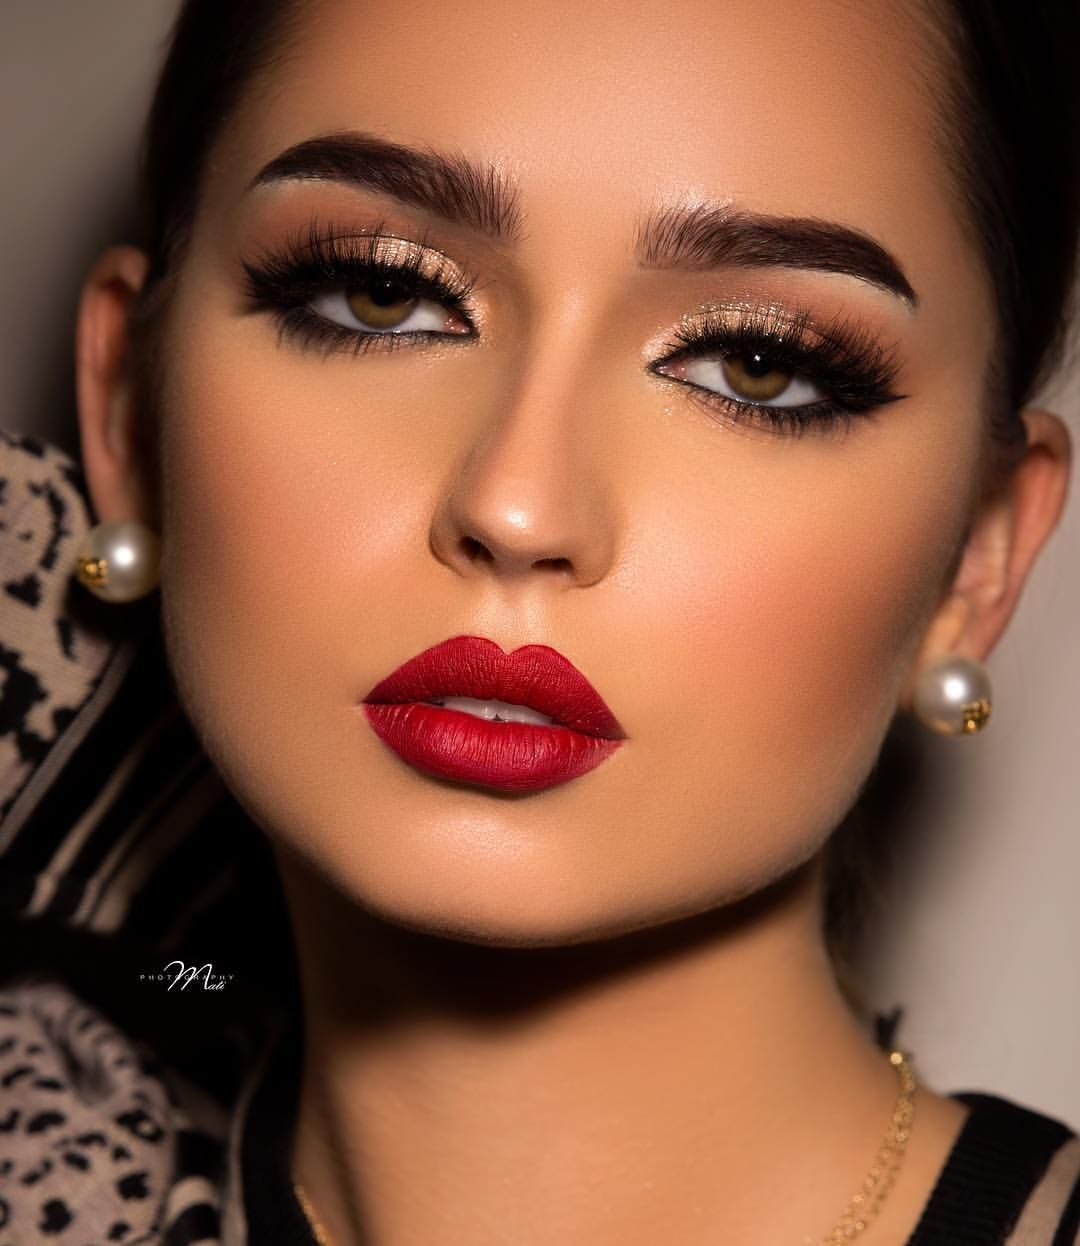 117 Likes 1 Comments Ftoom Hairstyle Ftoom Hairstyle On Instagram هل تصوير من شهرين مع صديقتي الغ Bold Lipstick Makeup Eye Makeup Beautiful Face Images